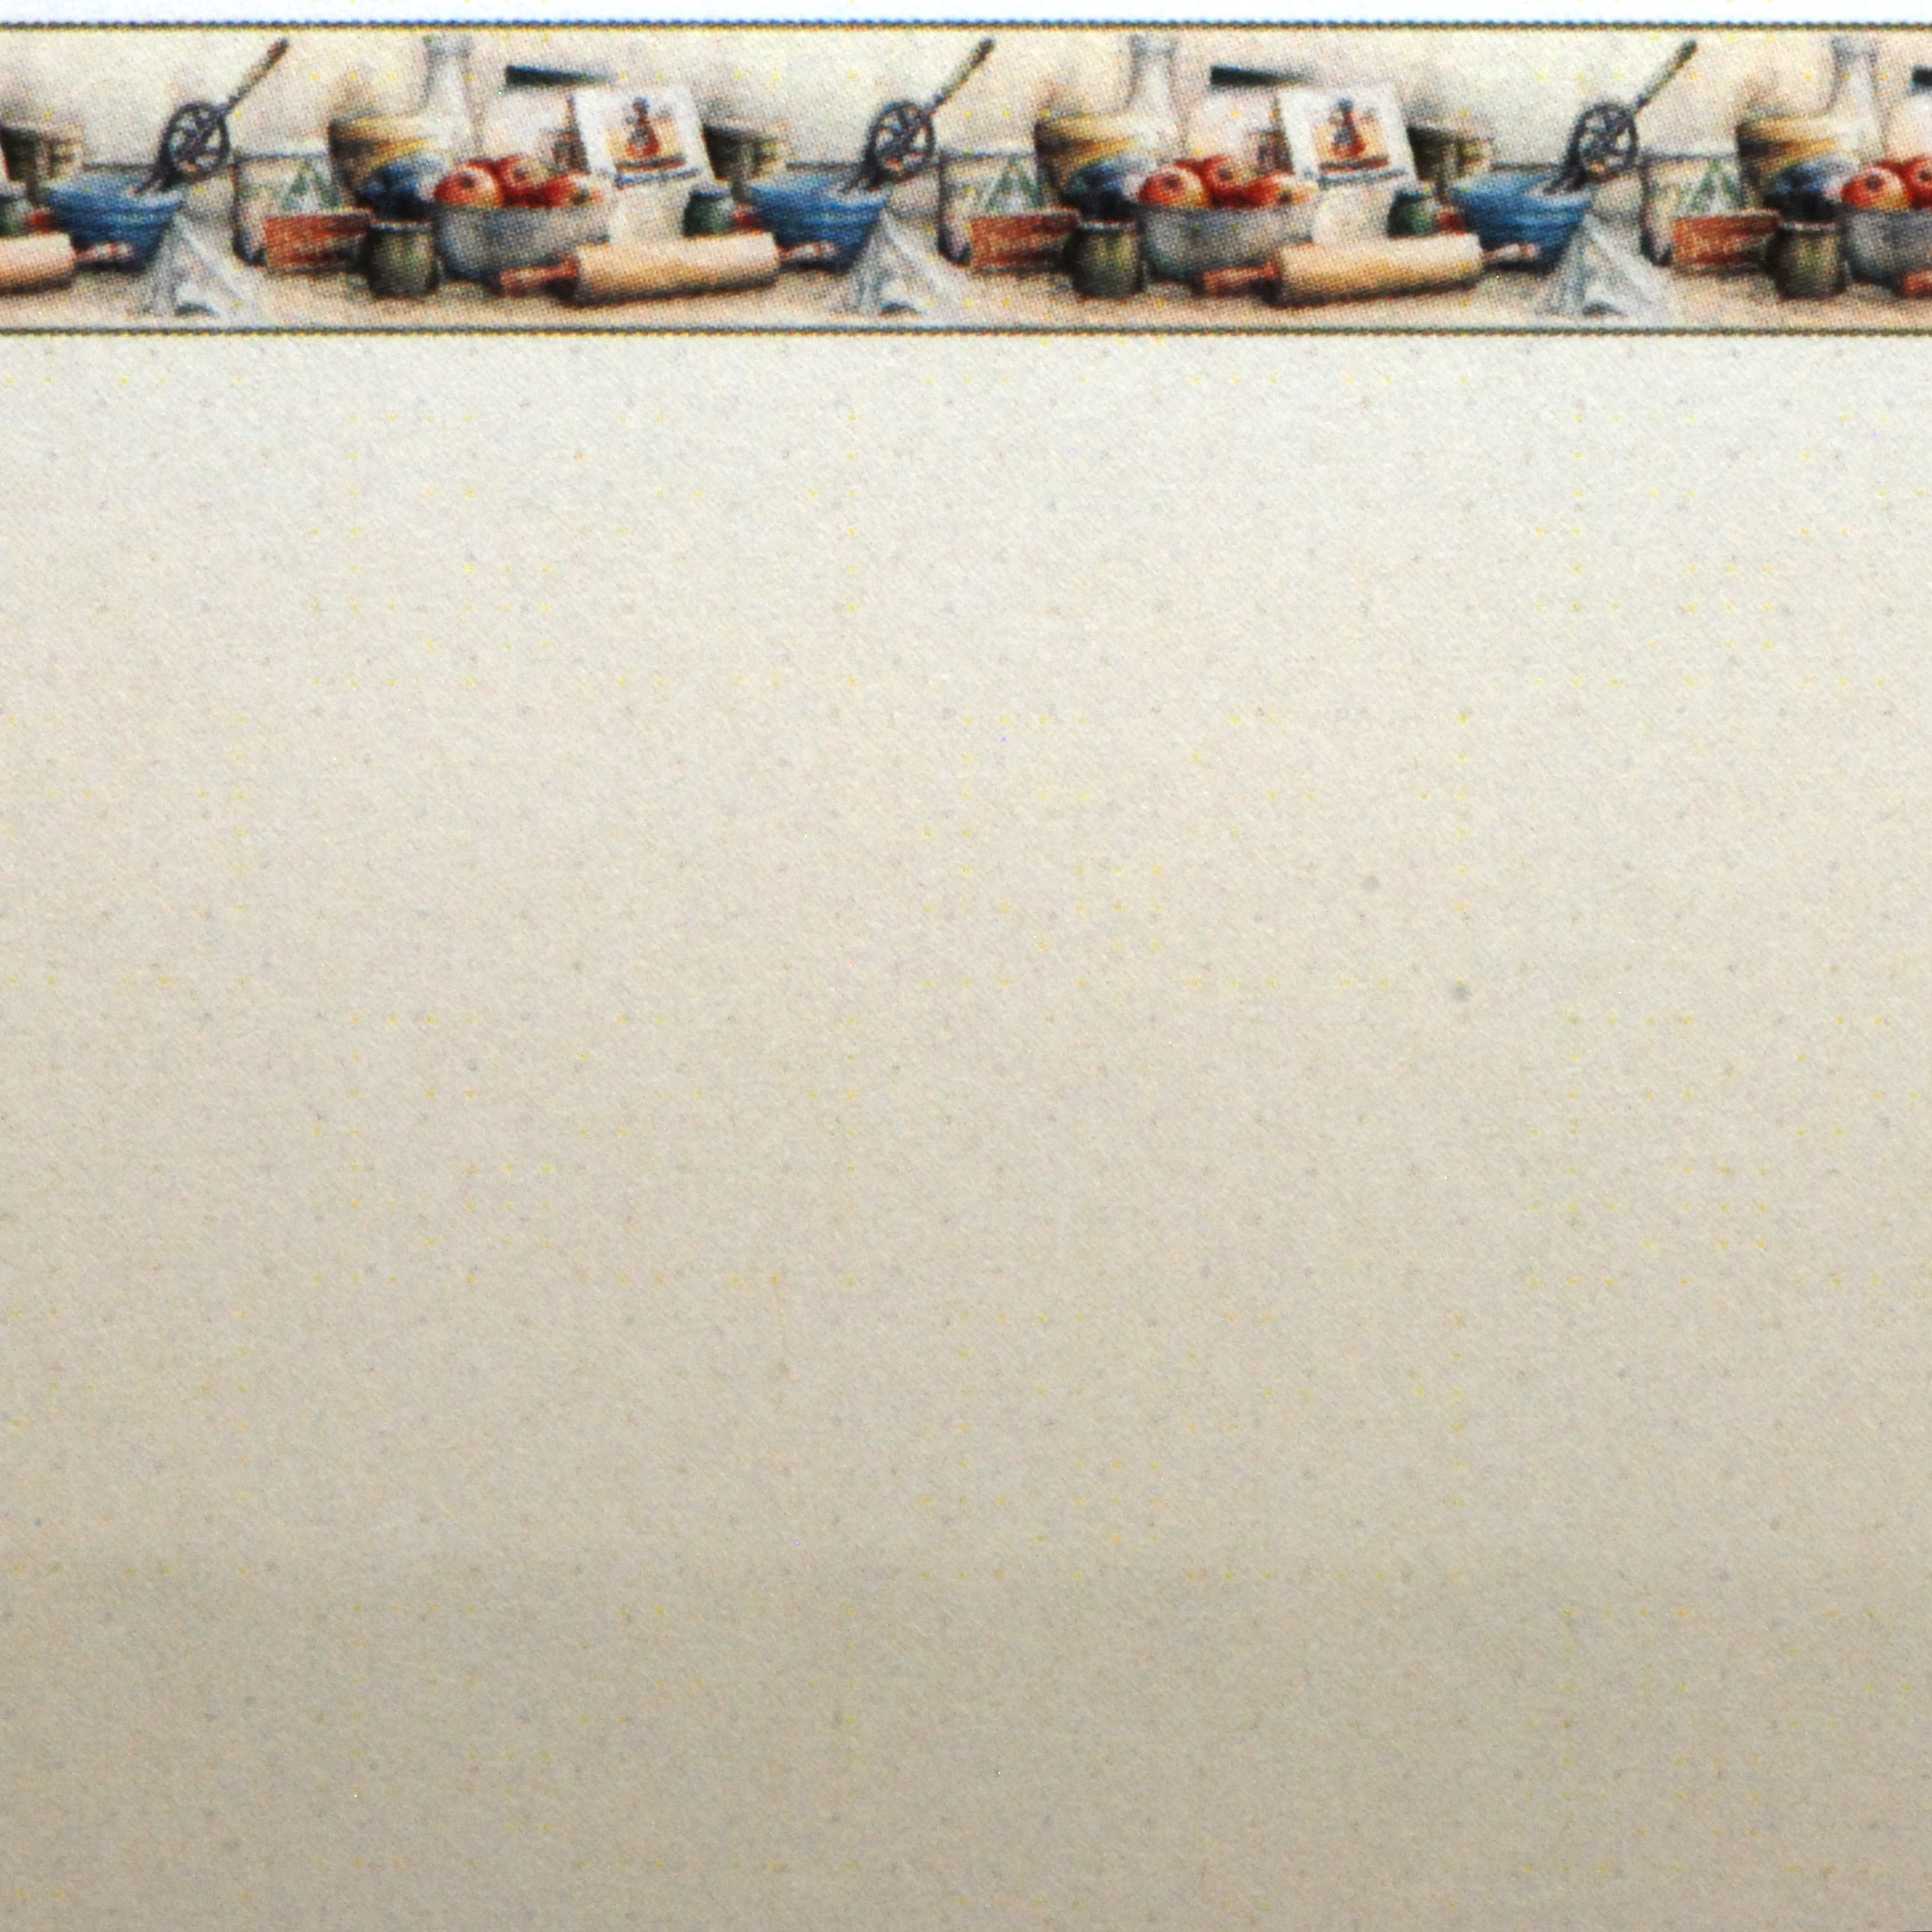 Rasch apples vinyl kitchen wallpaper 824506 cream cut price - Wallpaper By Topics Kitchen Wallpaper Border